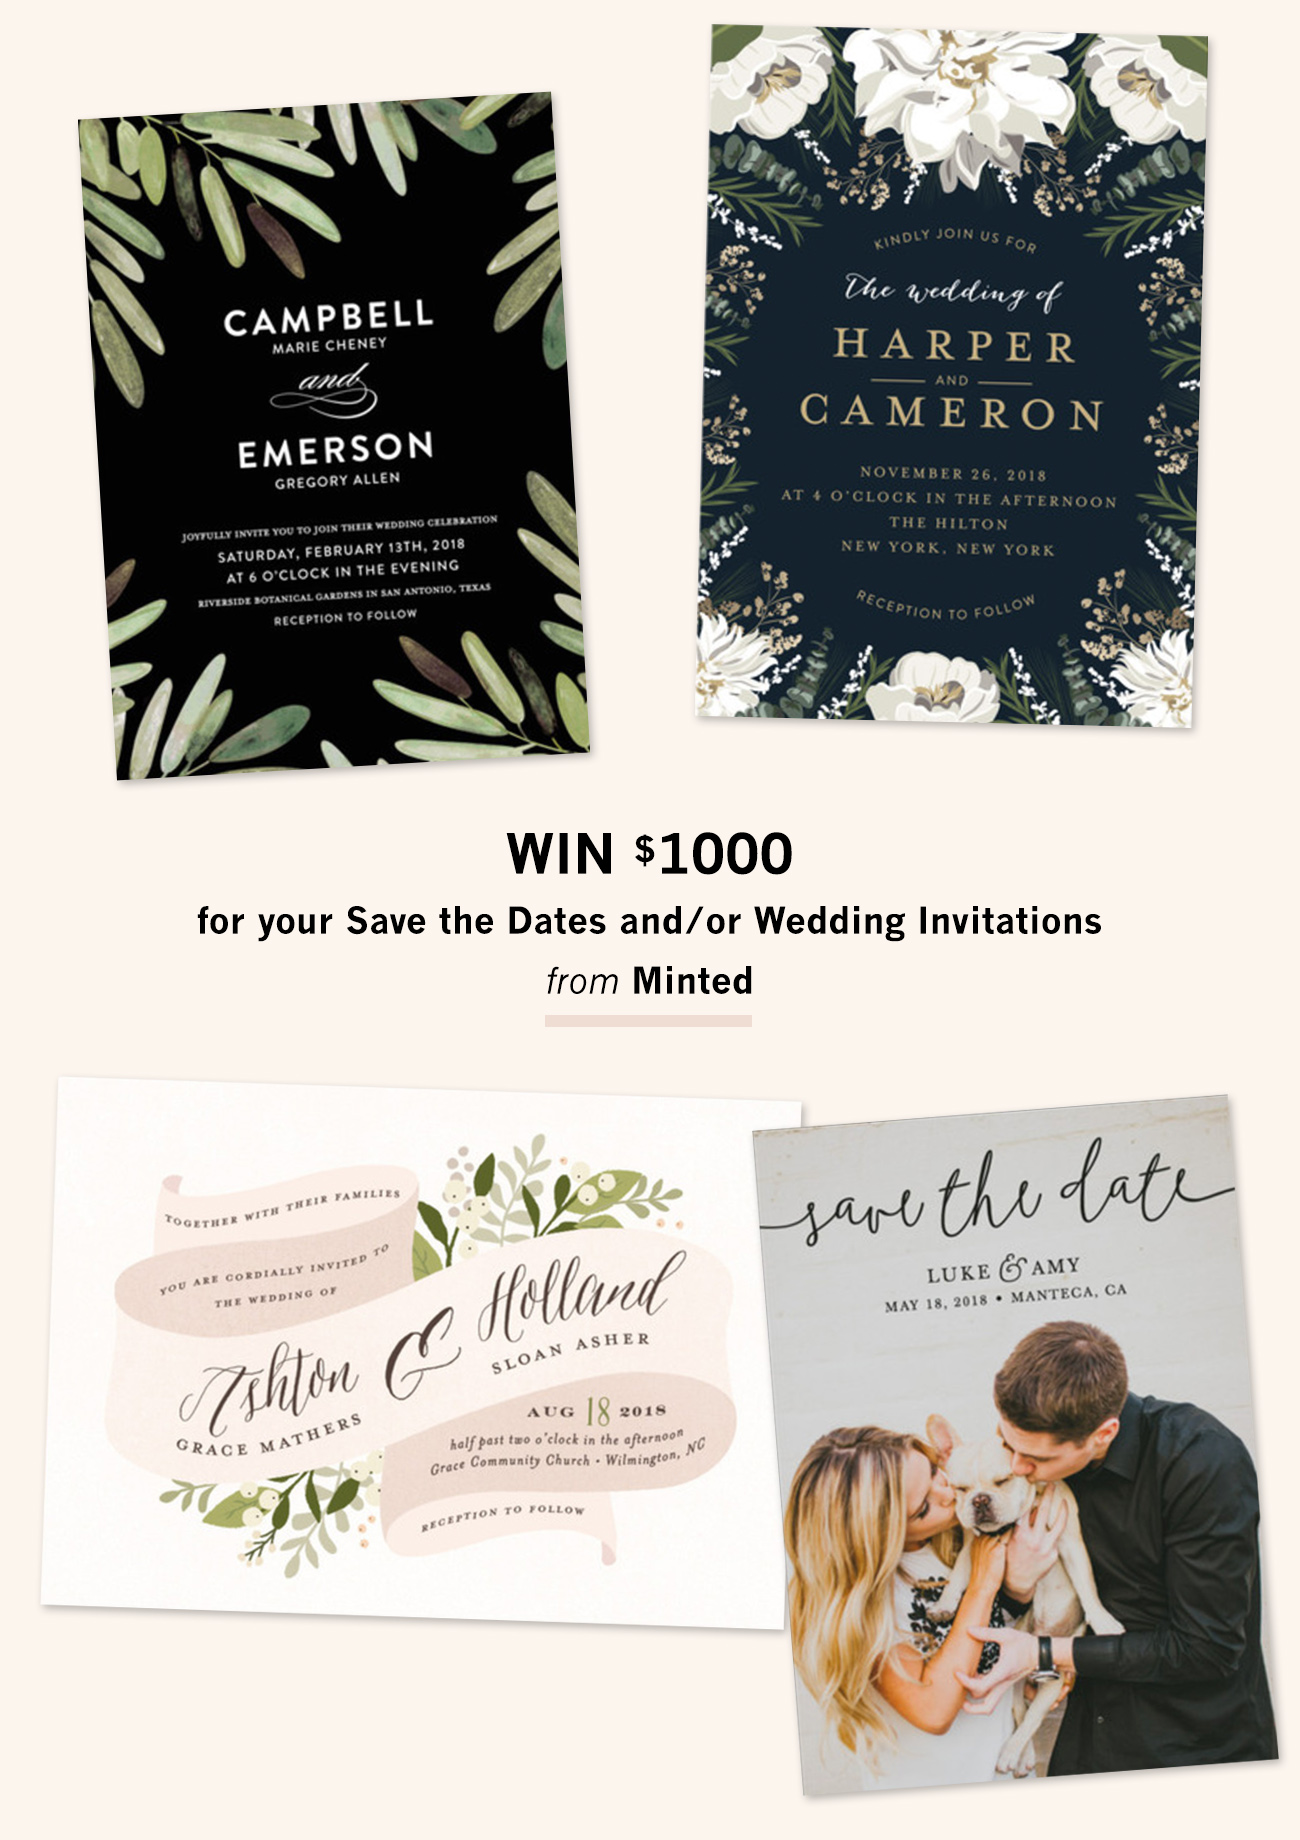 Win $1000 from Minted